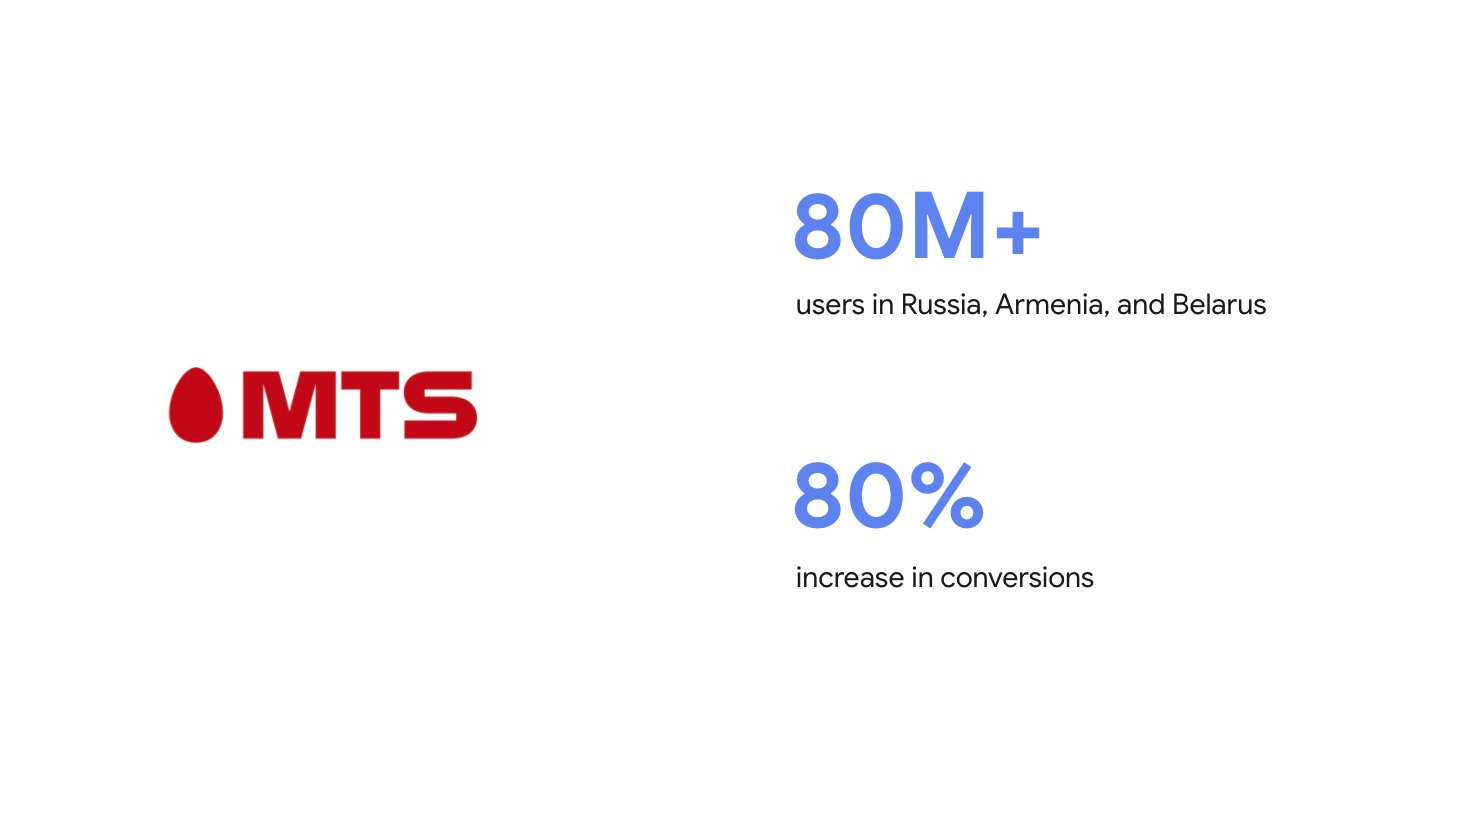 MTS users in Russia and increase in conversions